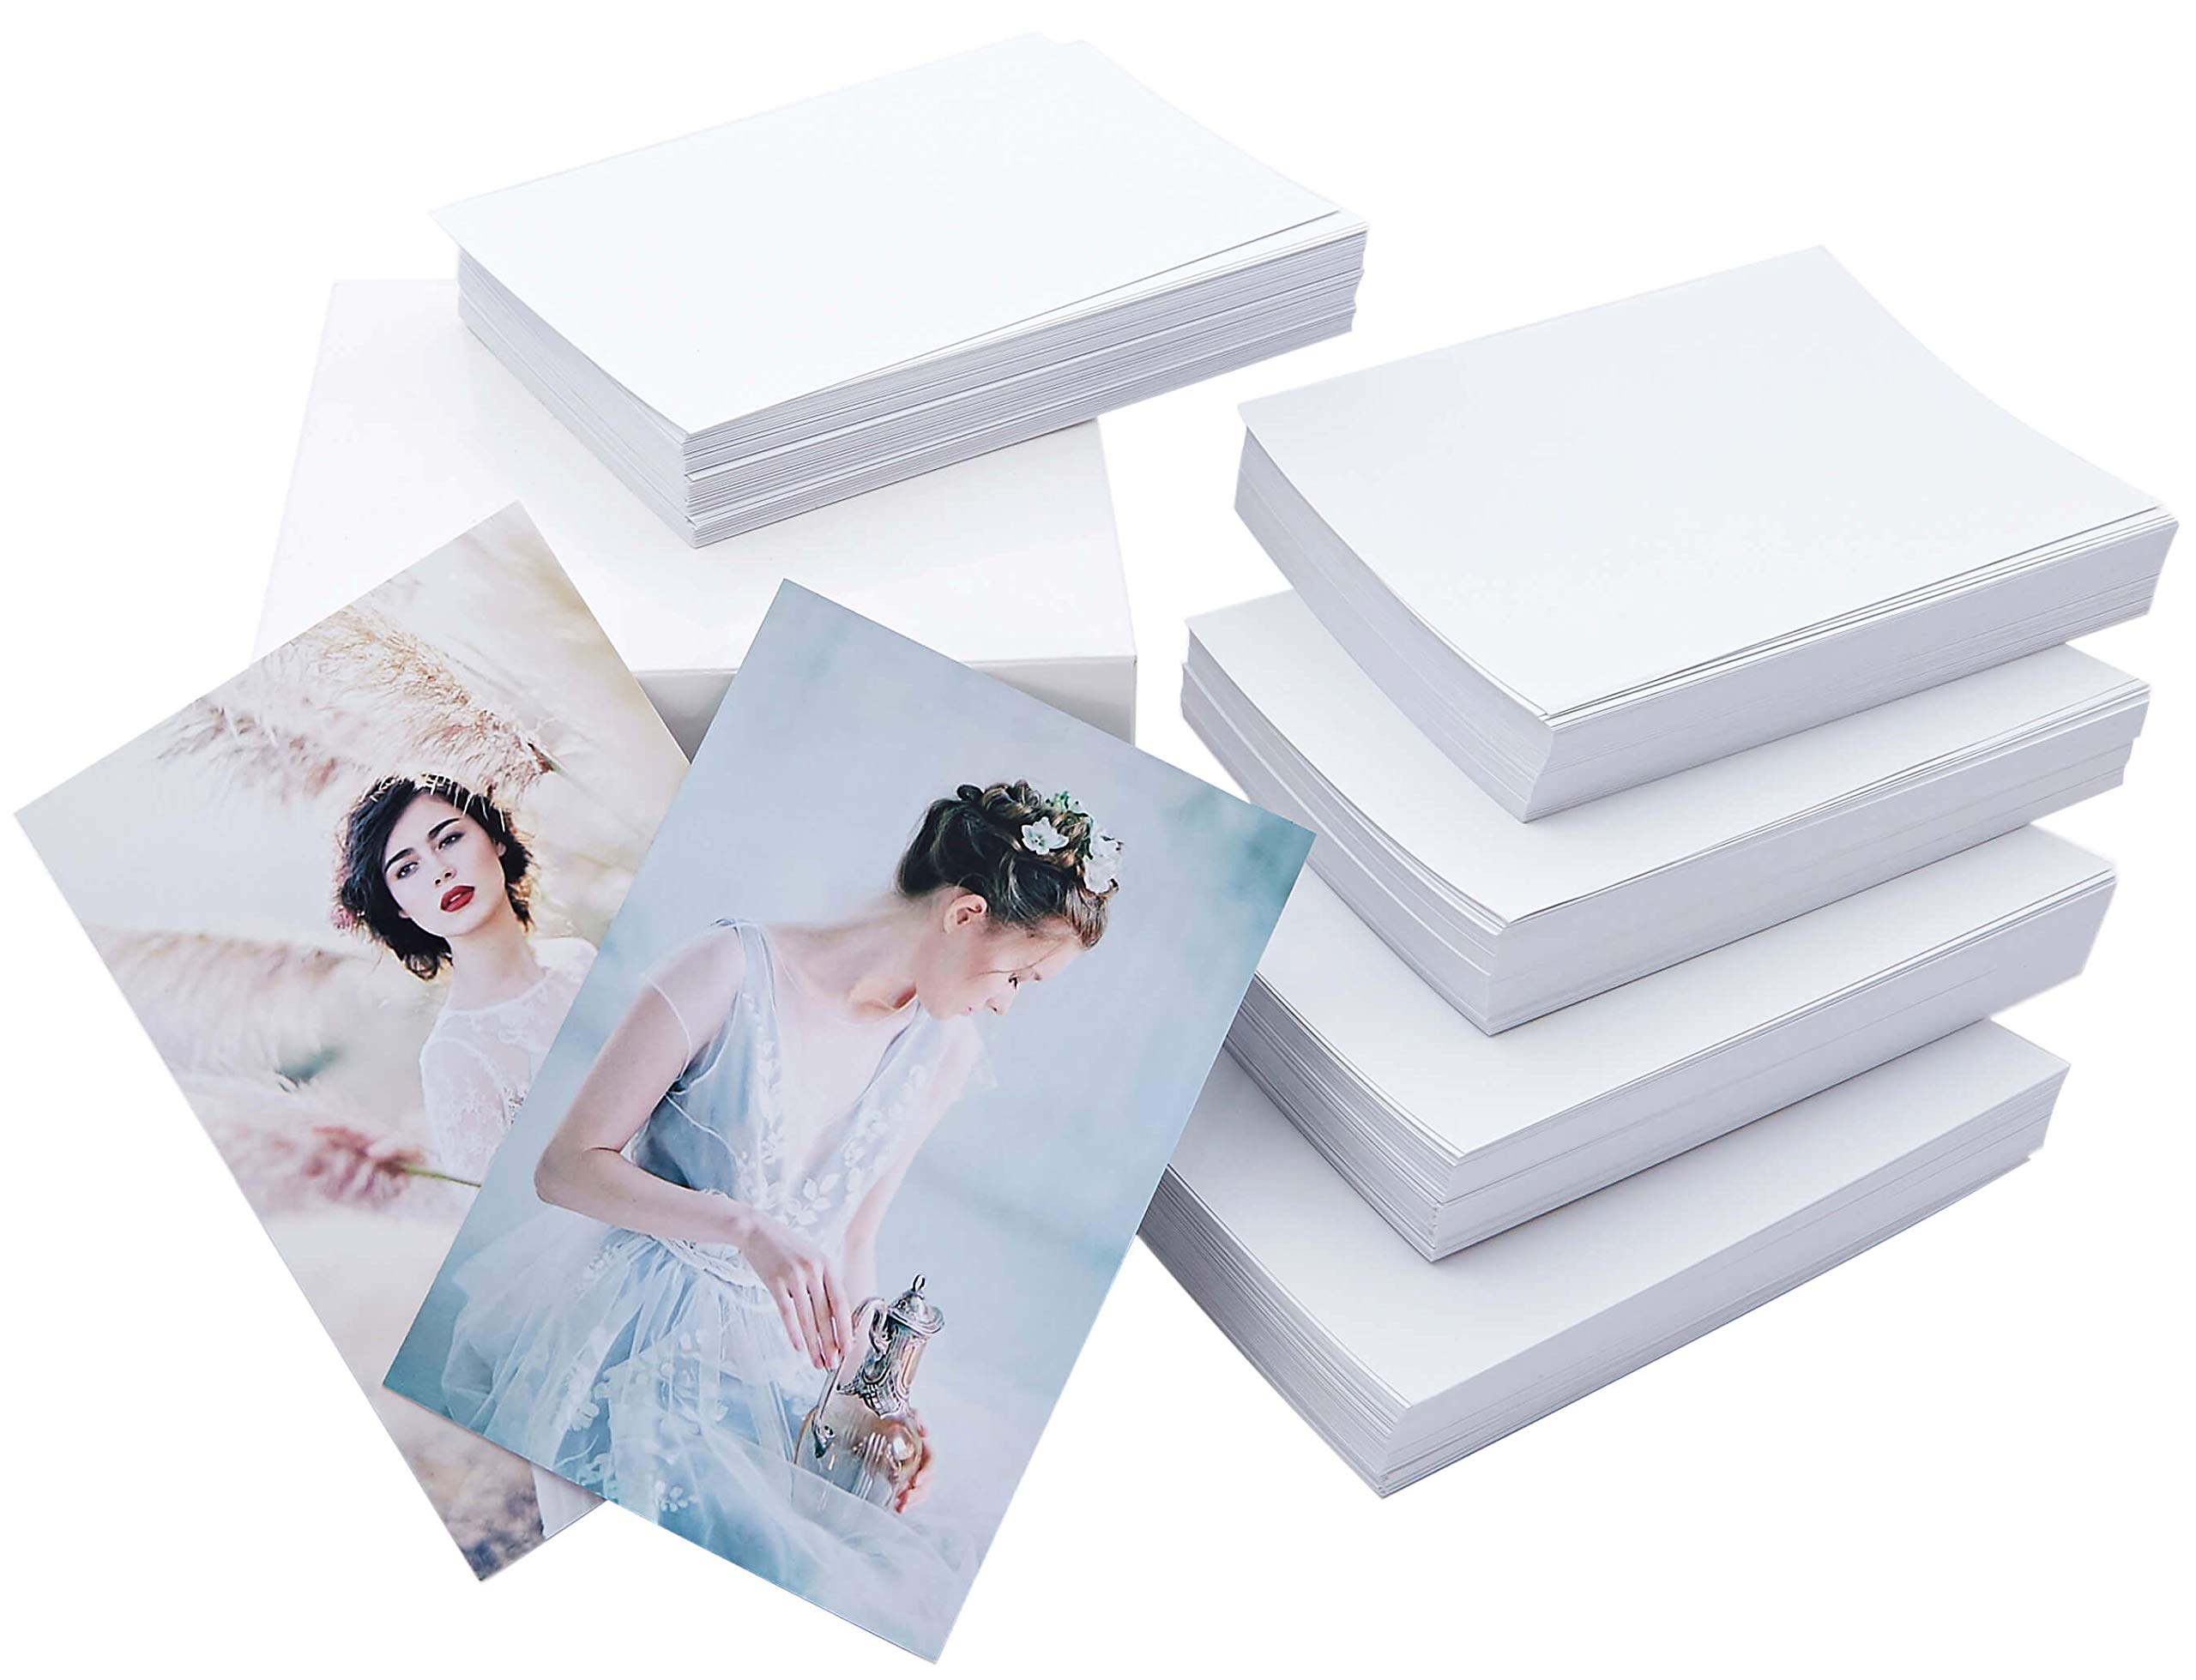 Matte Photo Paper 4x6, 500 Sheets (Economy Pack), Double Sided, For All Inkjet & Supertank Printers, 9.5 mil, 220gsm